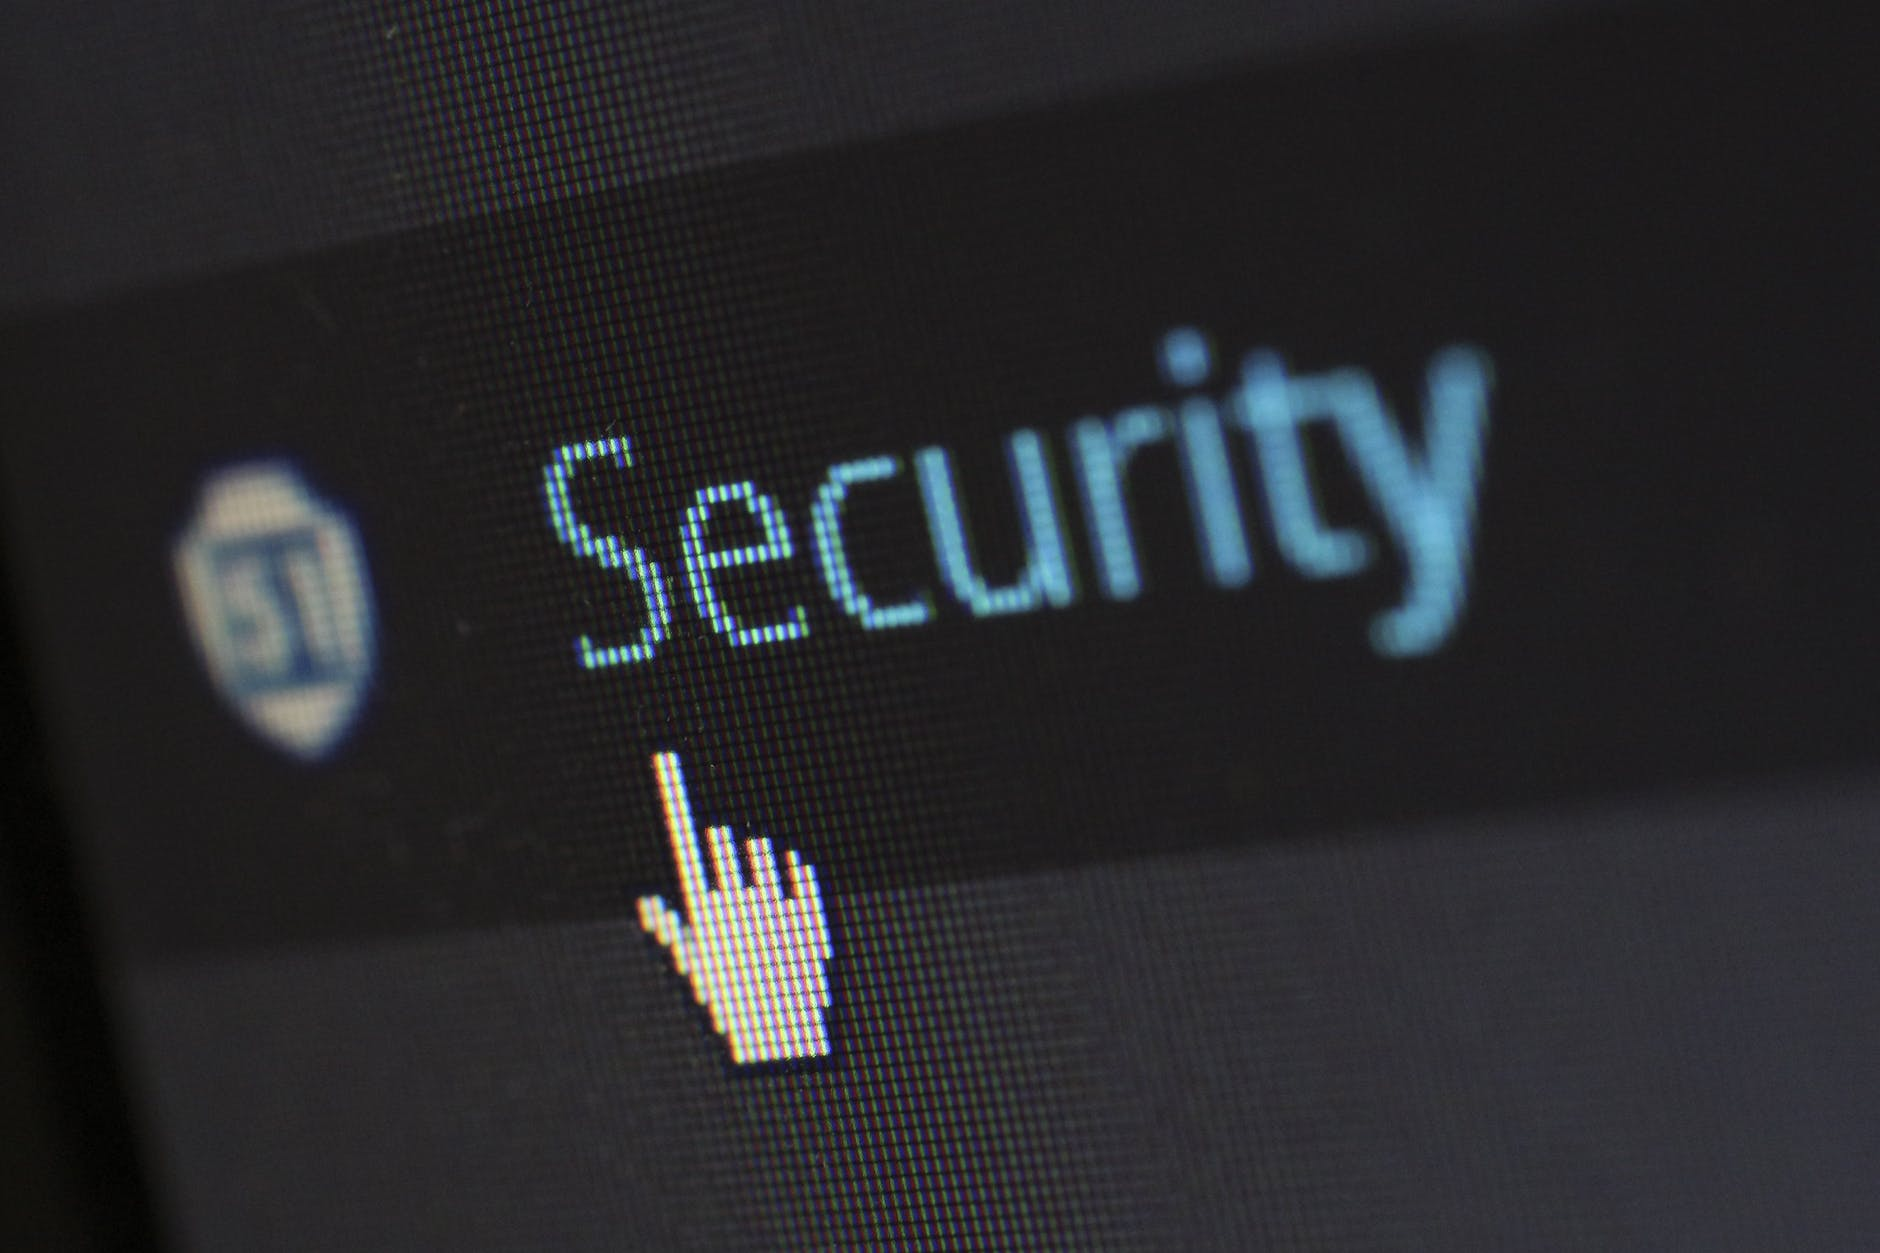 Is Windows Defender (Security) enough for our PC Security? Can we use it as a Primary Antivirus?